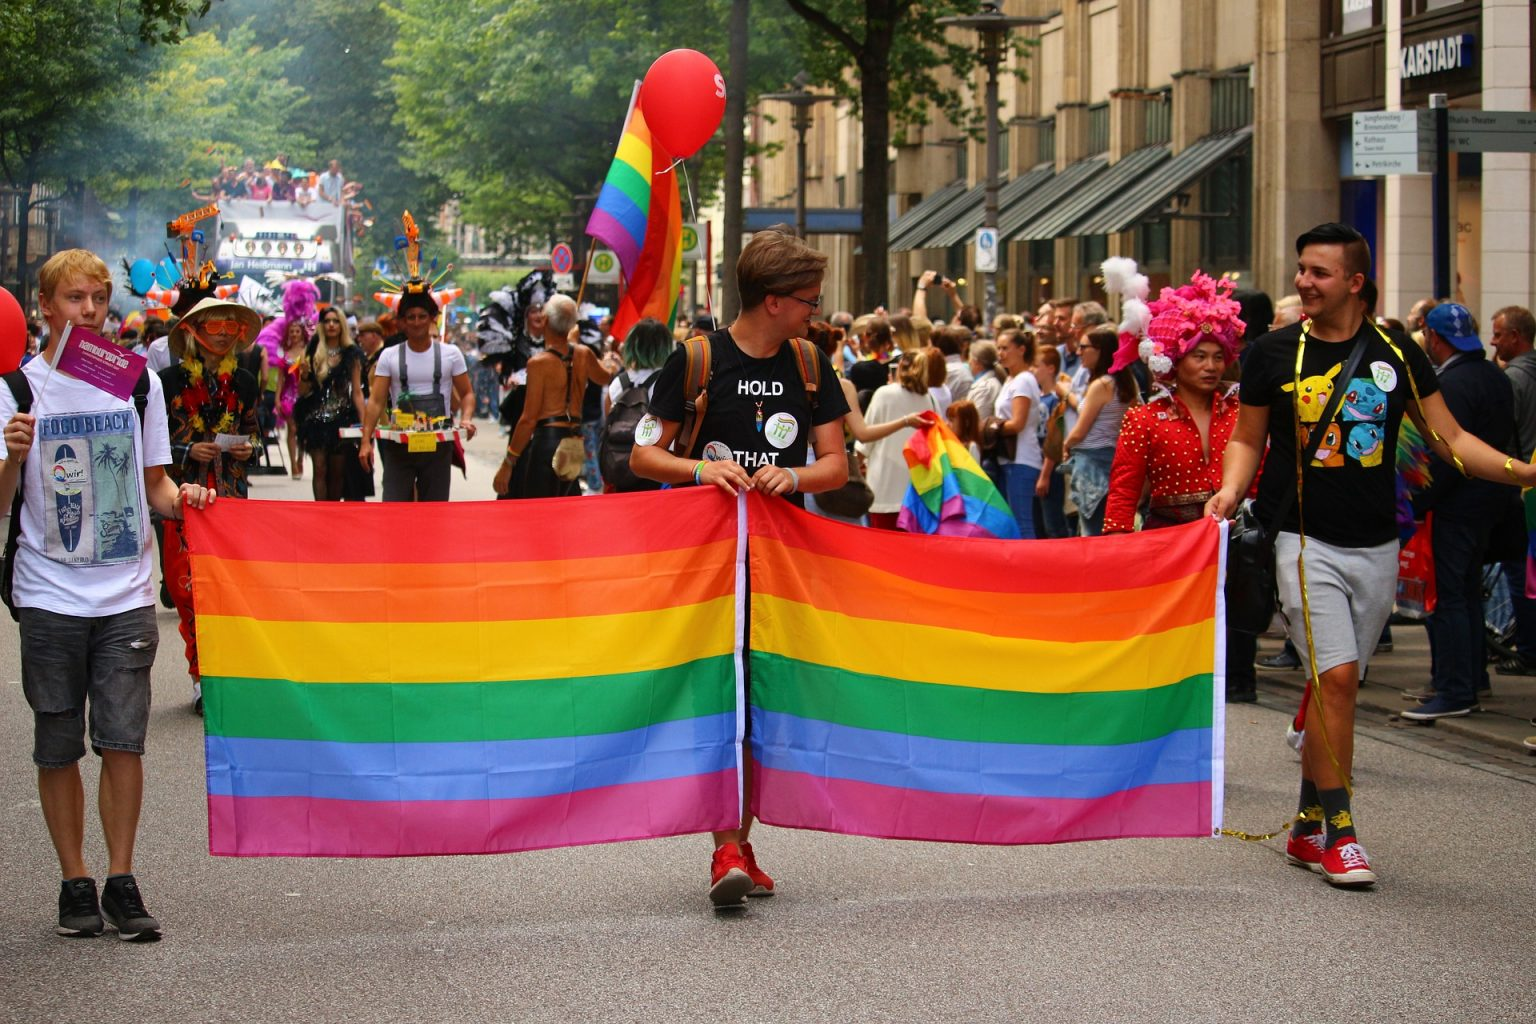 Three young people hold a pride flag in an LGBTQ pride march